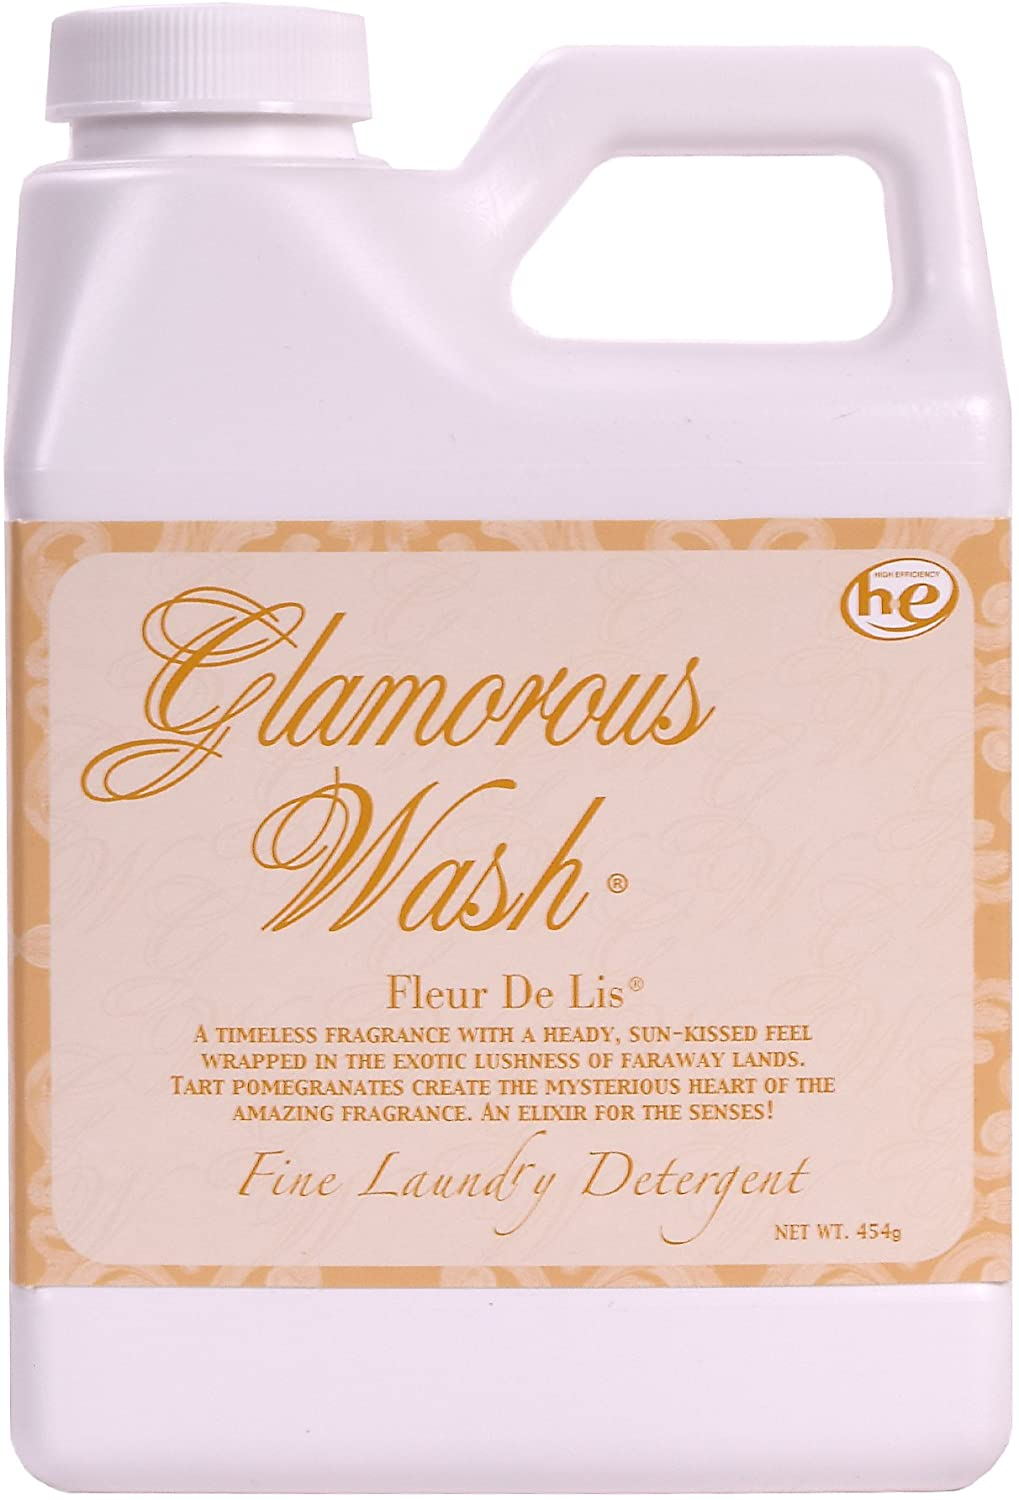 Fleur de Lis - Glamorous Wash by Tyler Candle Co.